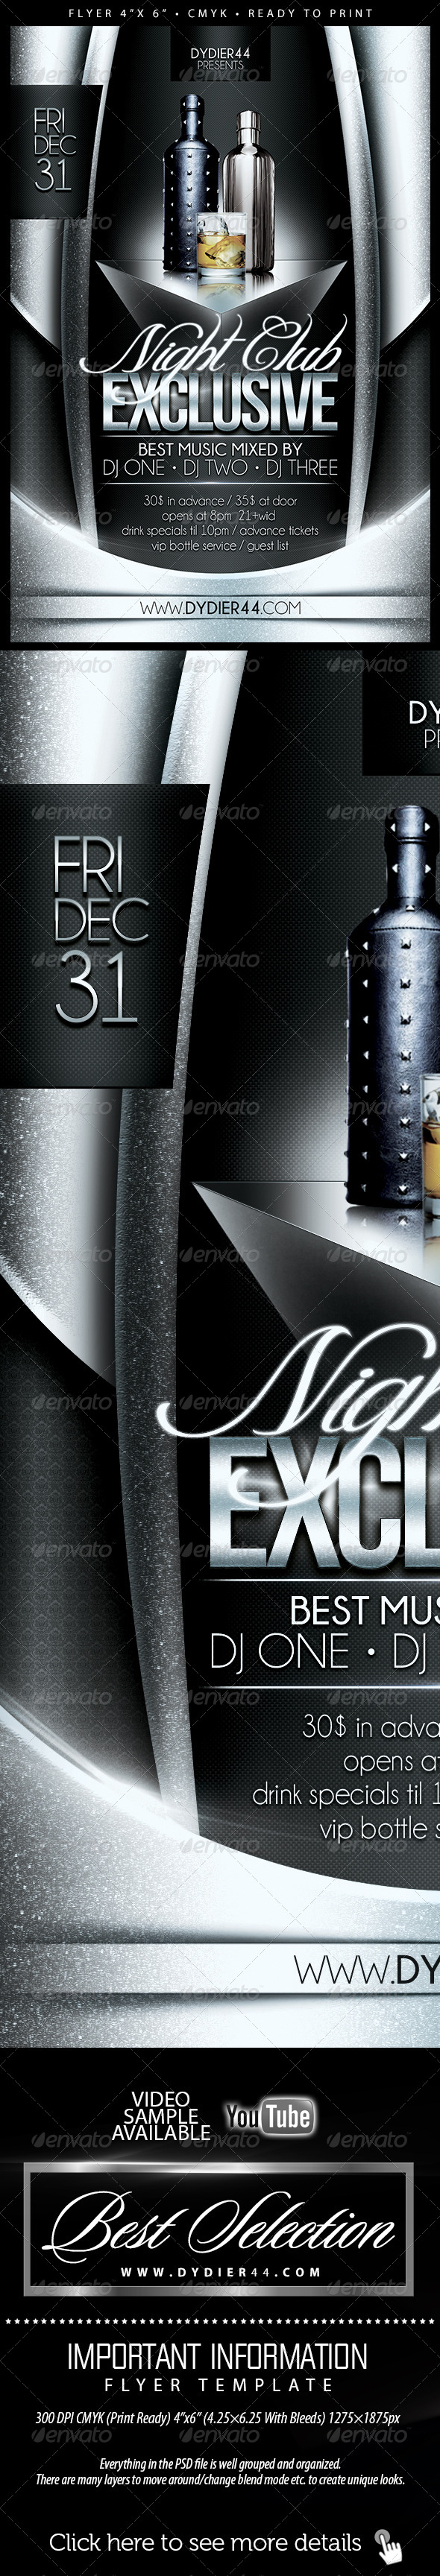 Nightclub Exclusive (Flyer Template 4x6) - Flyers Print Templates